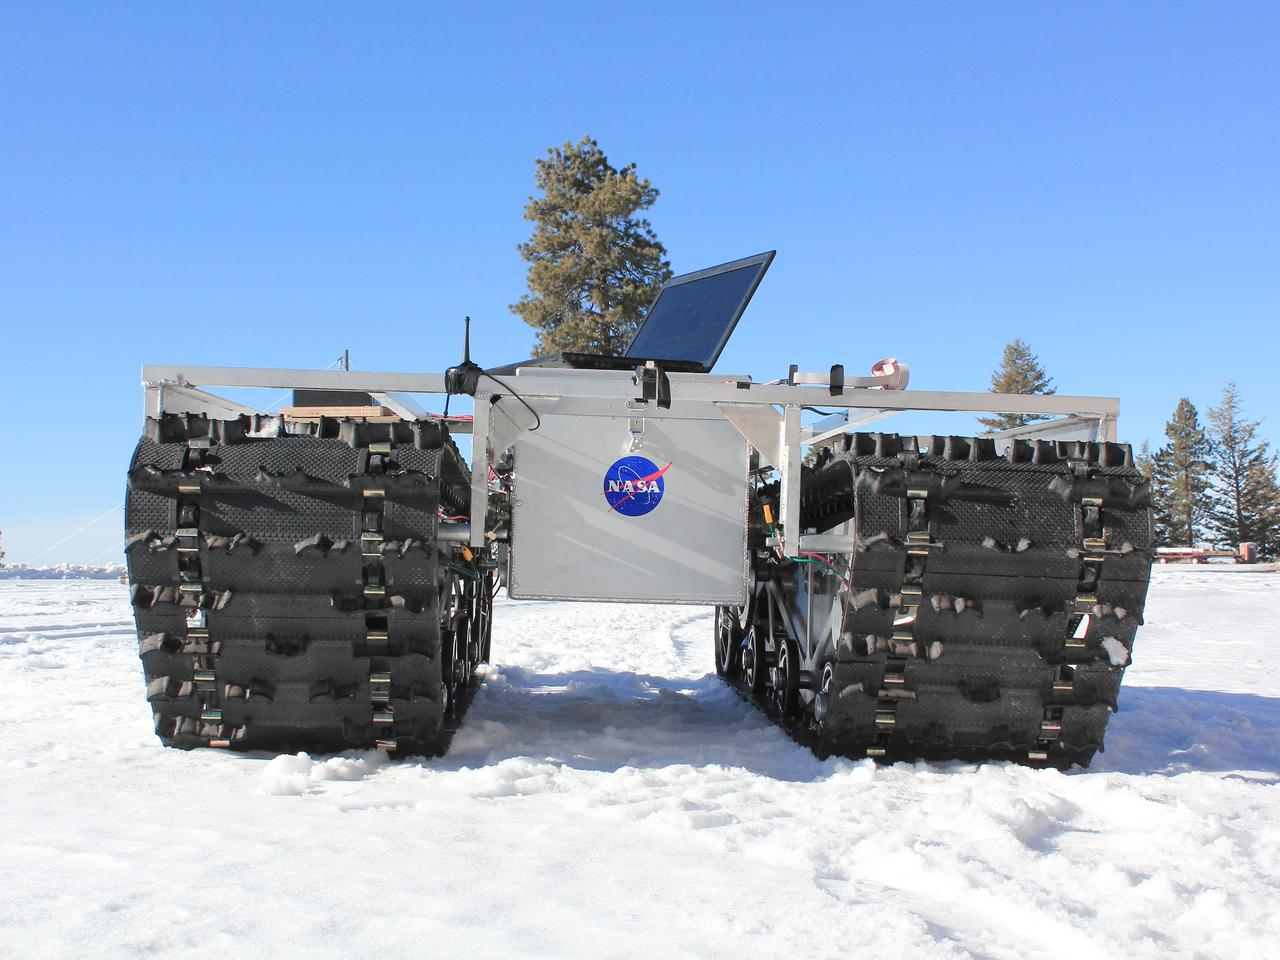 NASA's GROVER, without solar panels. The laptop is a temporary fixture (Photo: Gabriel Trisca, Boise State University)